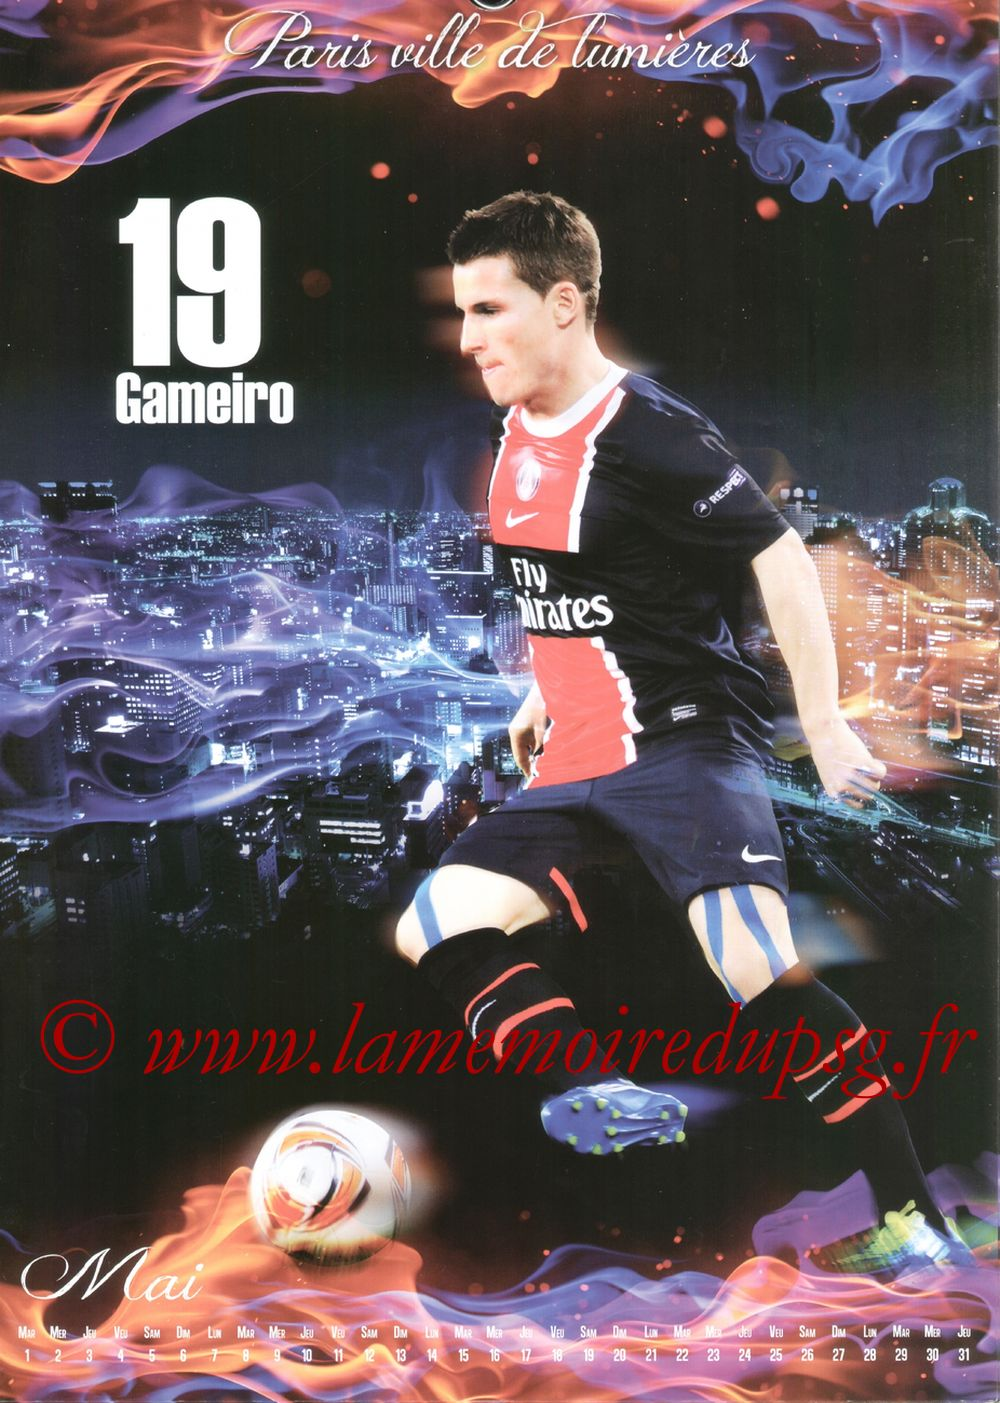 Calendrier PSG 2012bis - Page 05 -Kévin GAMEIRO